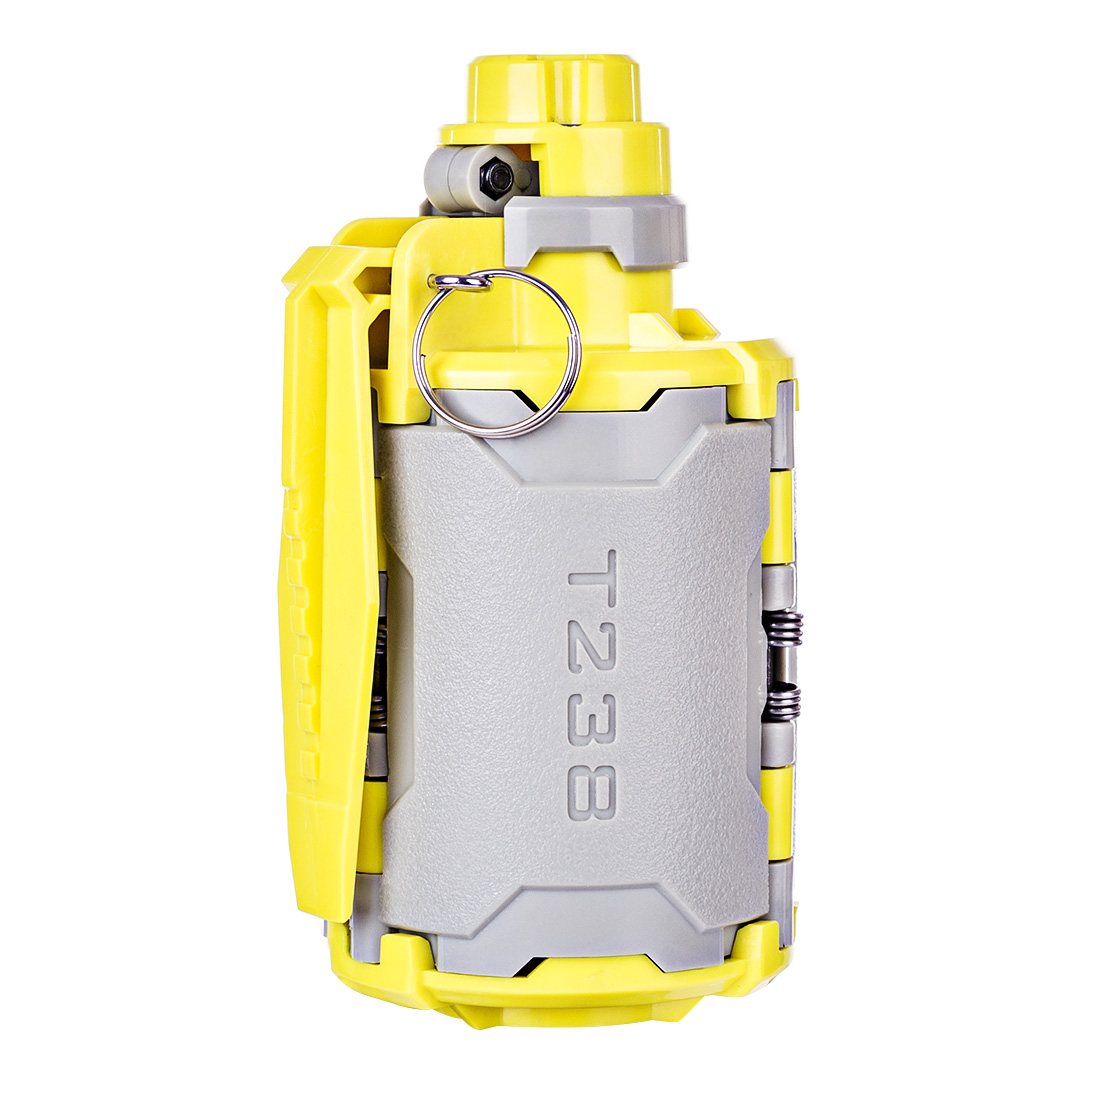 T238 V2 Large Capacity Water Bomb Toy With Time-delayed Function For Gel Ball BBs Airsoft War Game - Grey + Yellow